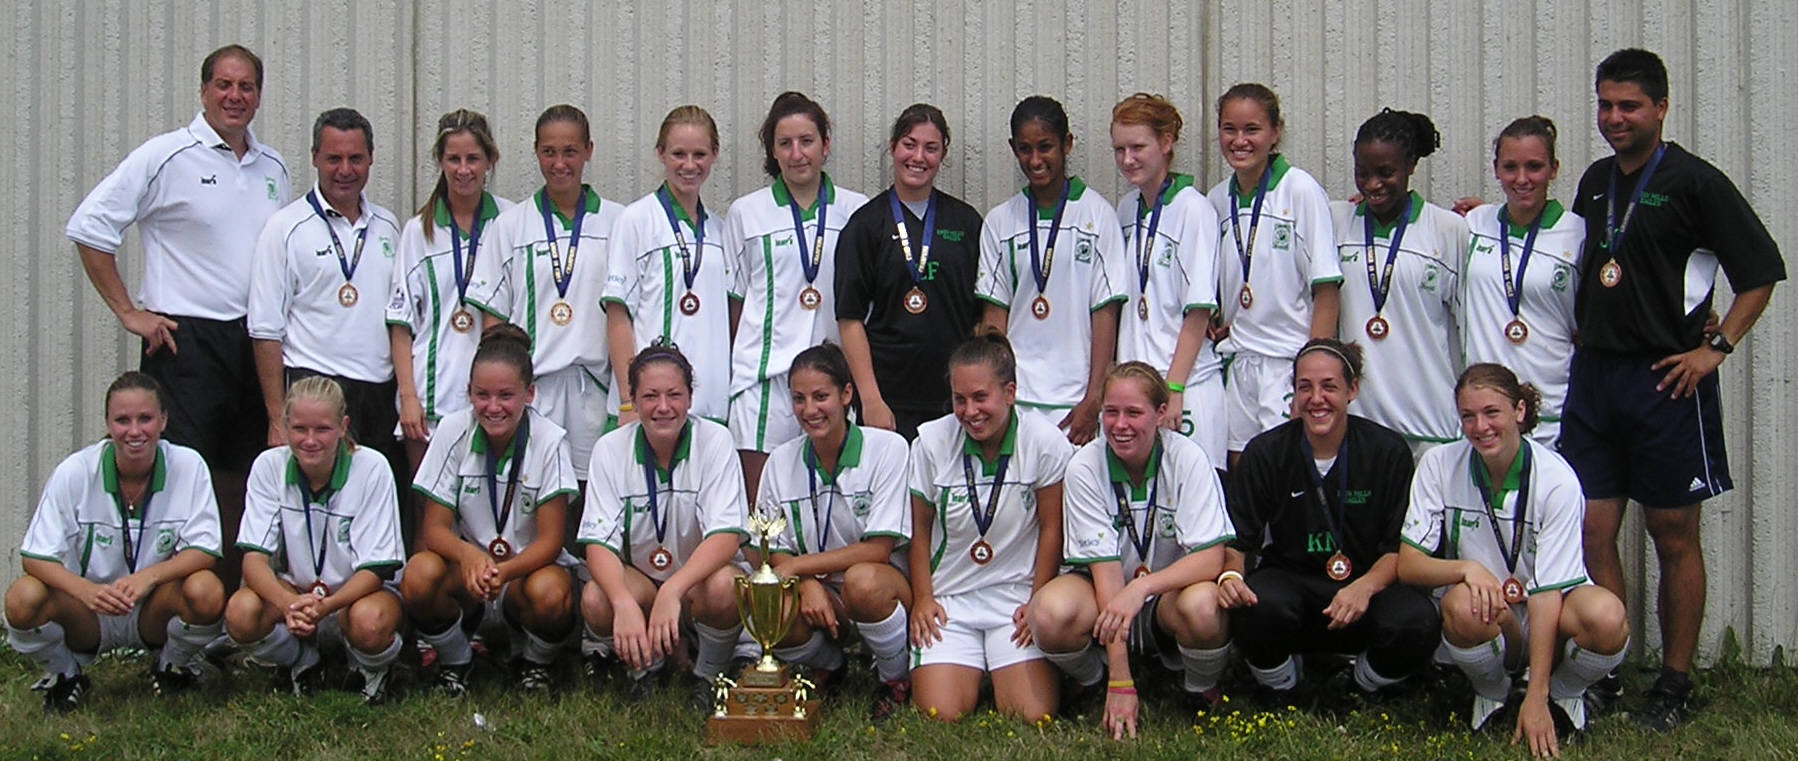 G18 ONT CUP 2005